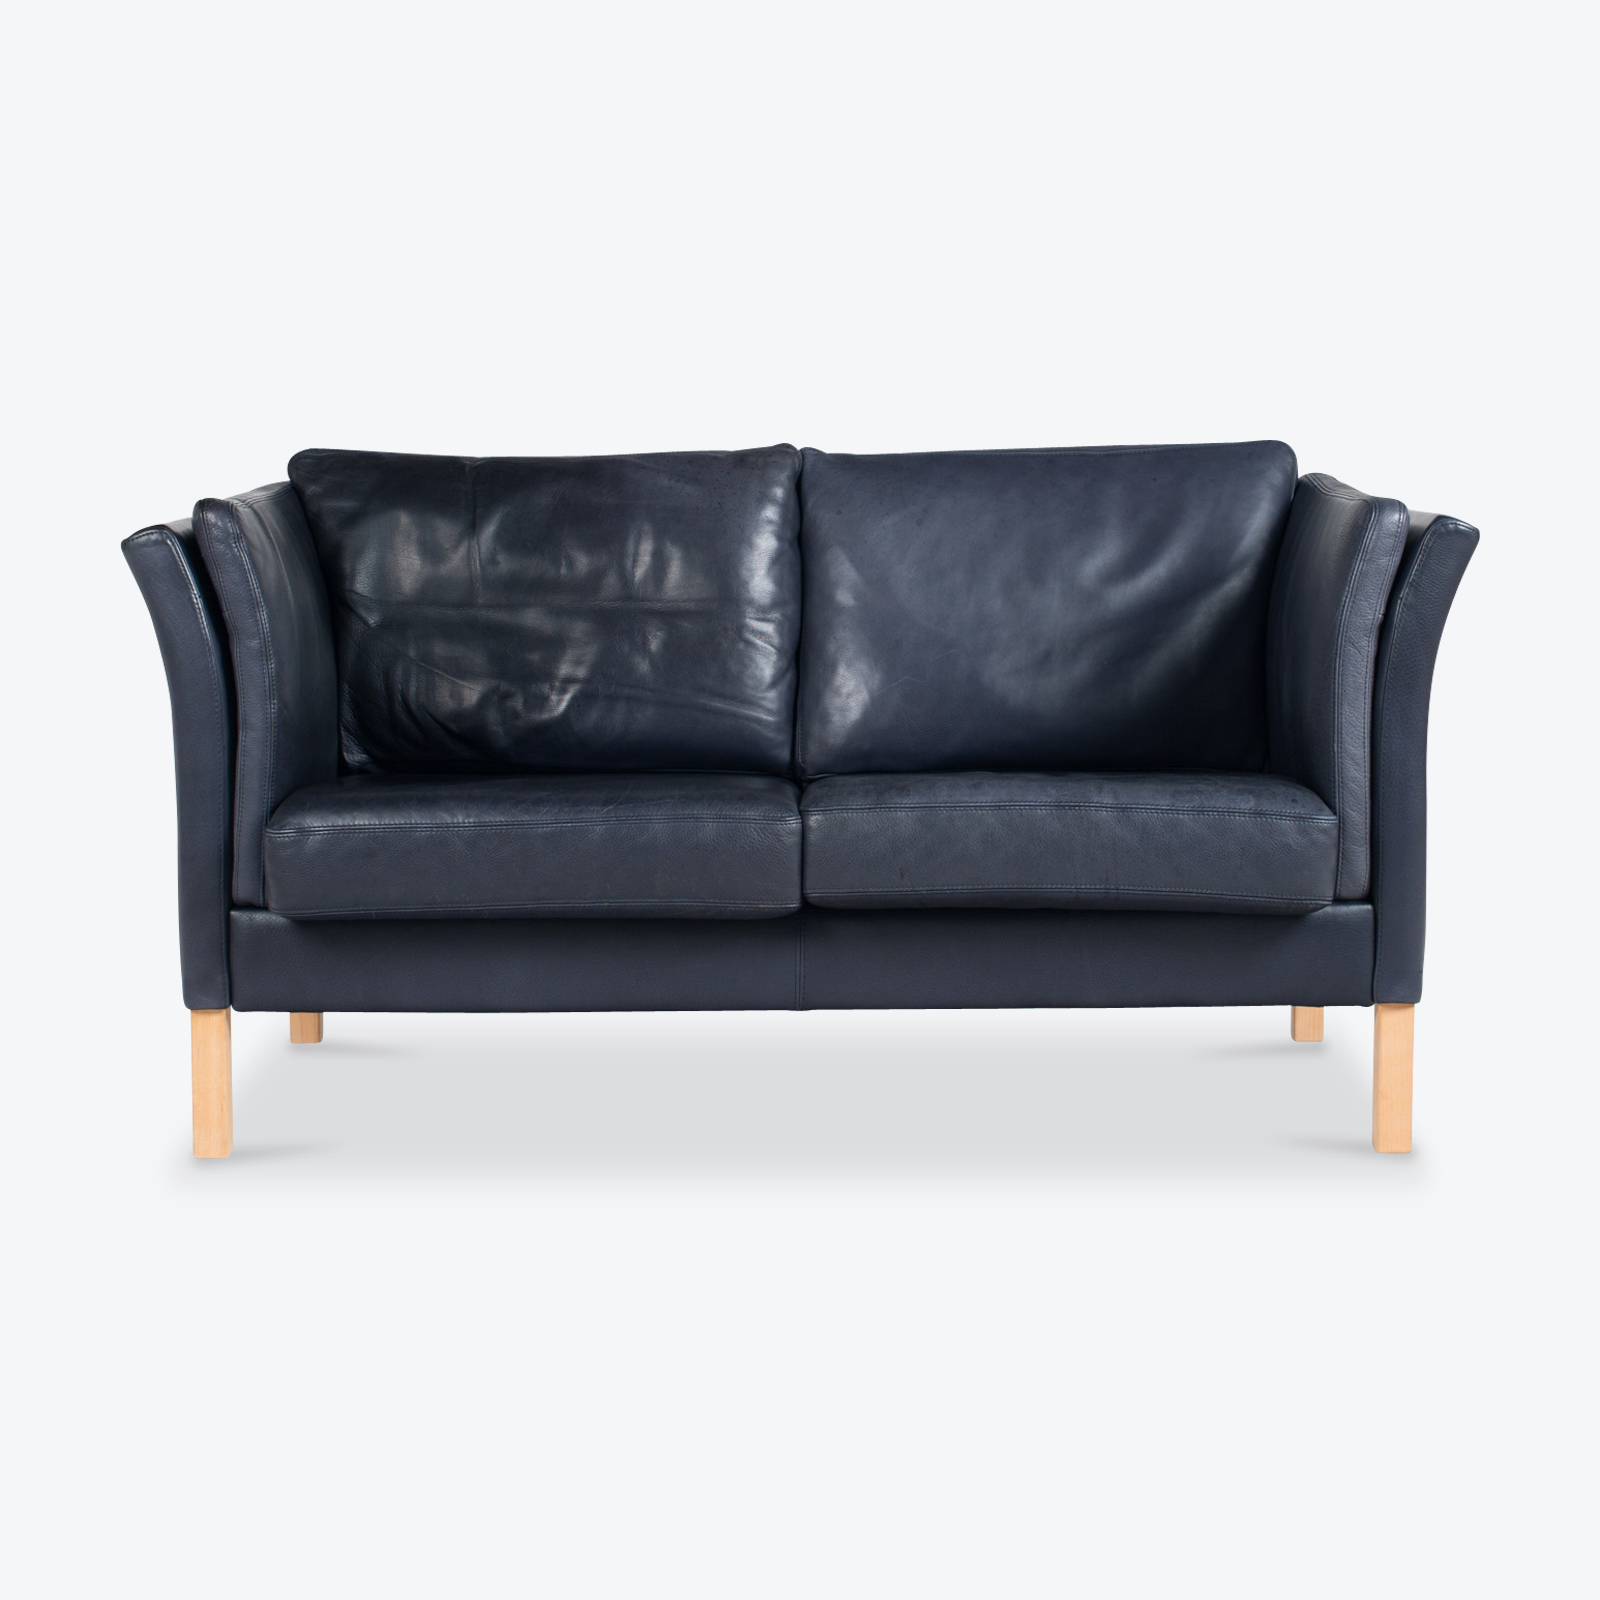 2 Seat Sofa by Skalma in Navy Leather, 1960s, Denmark - Modern Times